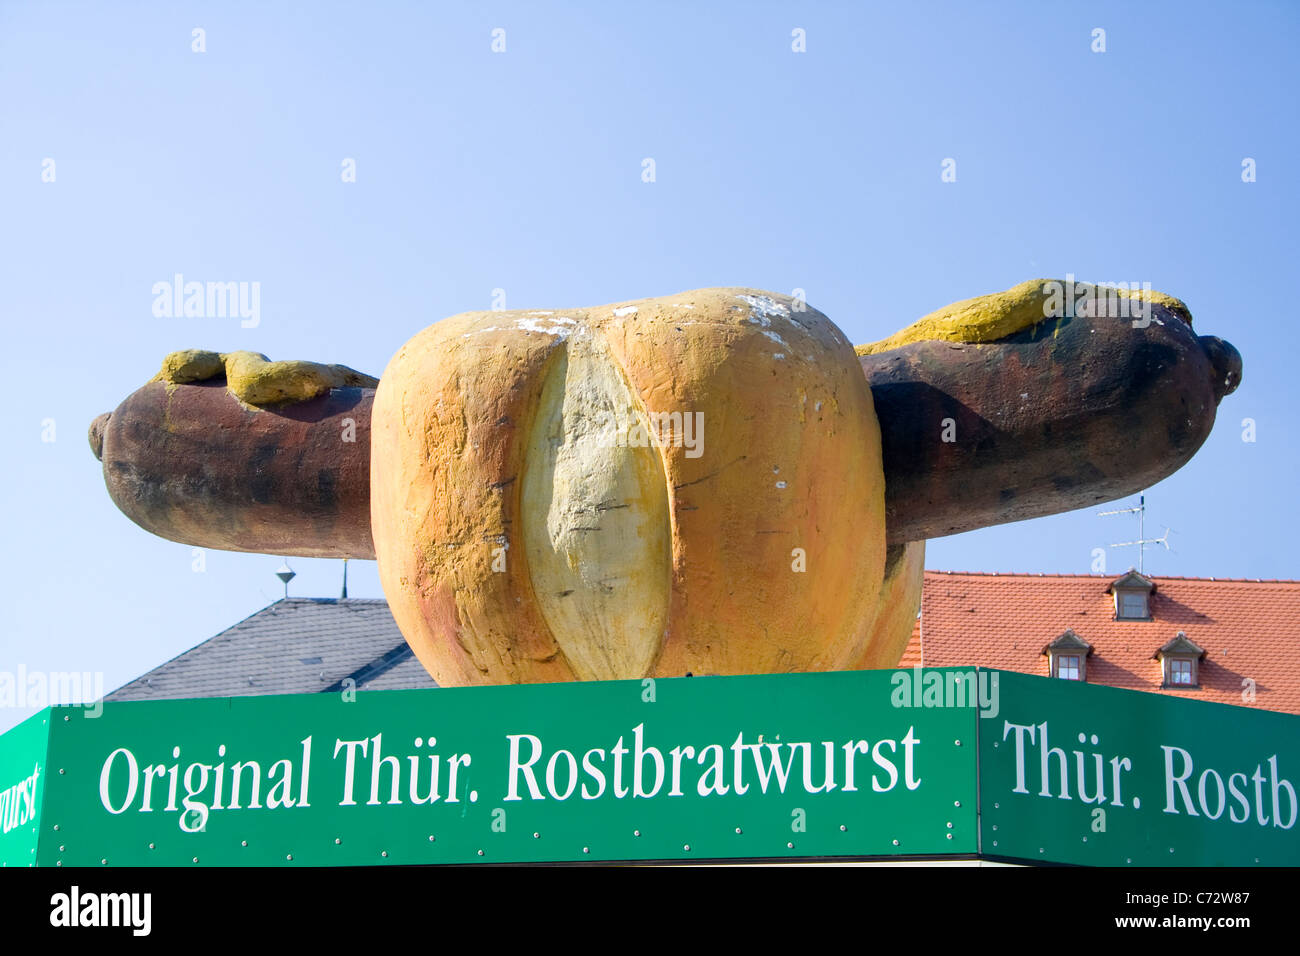 Advertising sculpture promoting Thueringer Rostbratwurst, barbecued sausages, Weimar, Thuringia, Germany, Europe - Stock Image